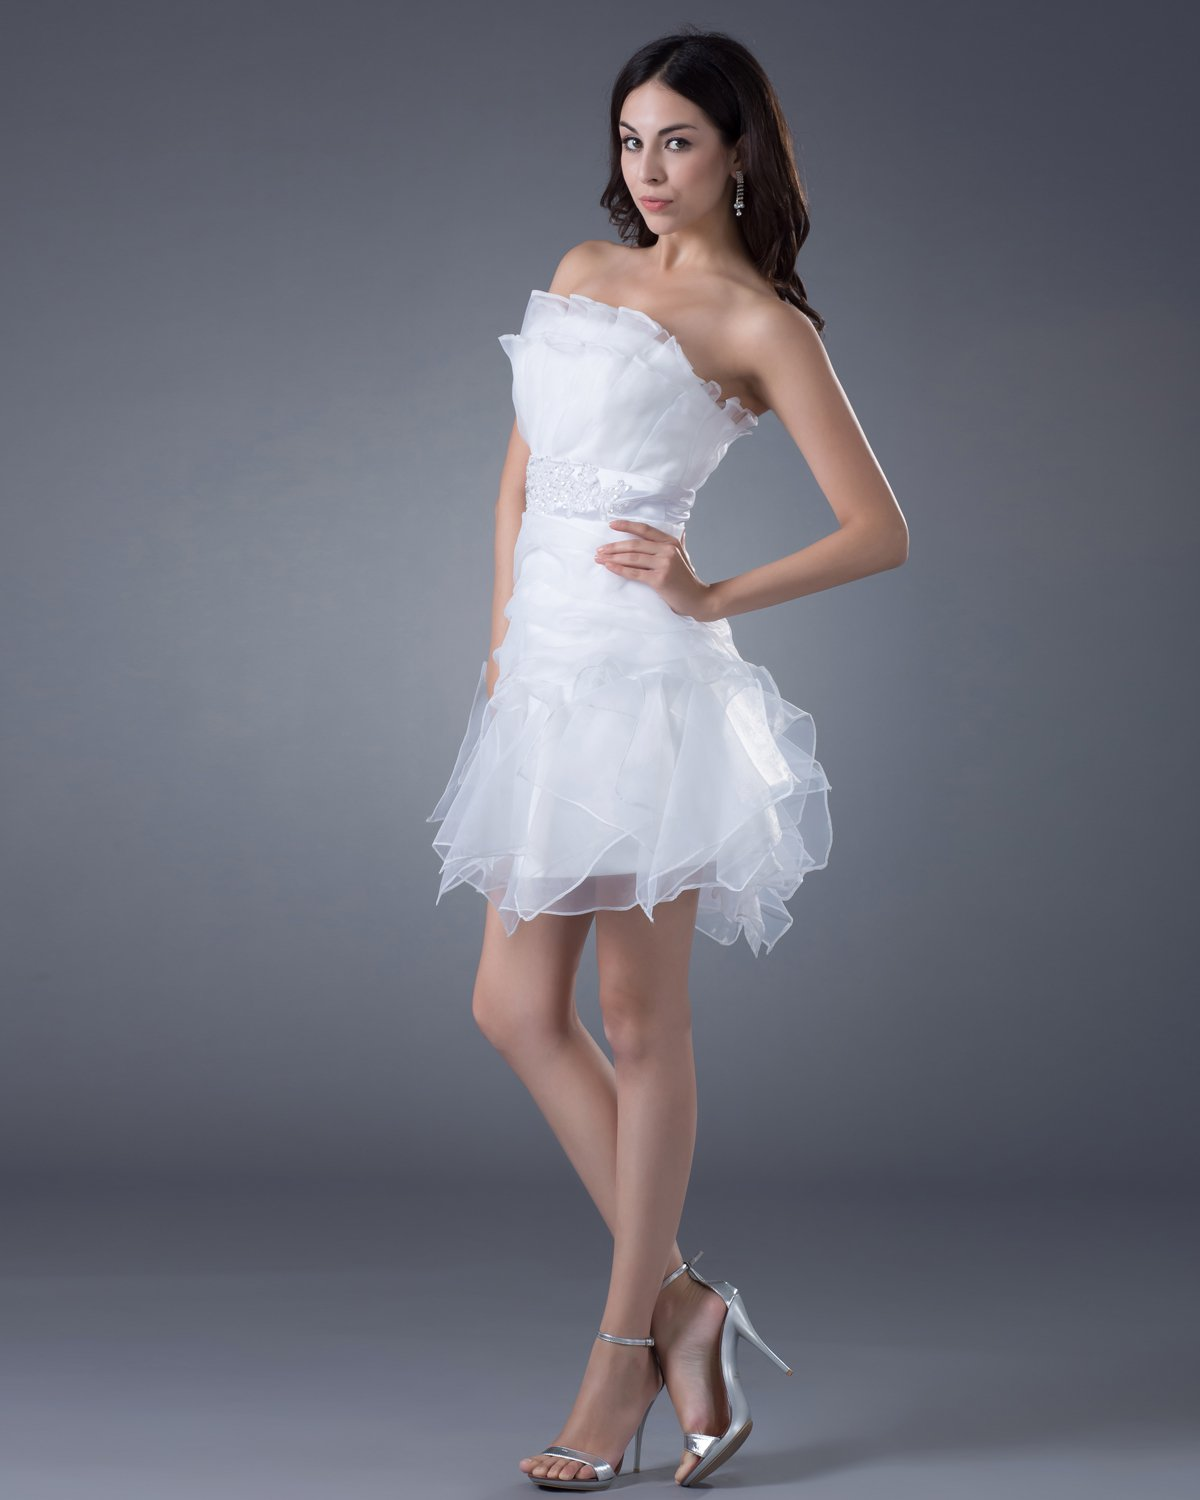 Yarn Sash Strapless Short Bridal Gown Wedding Dresses